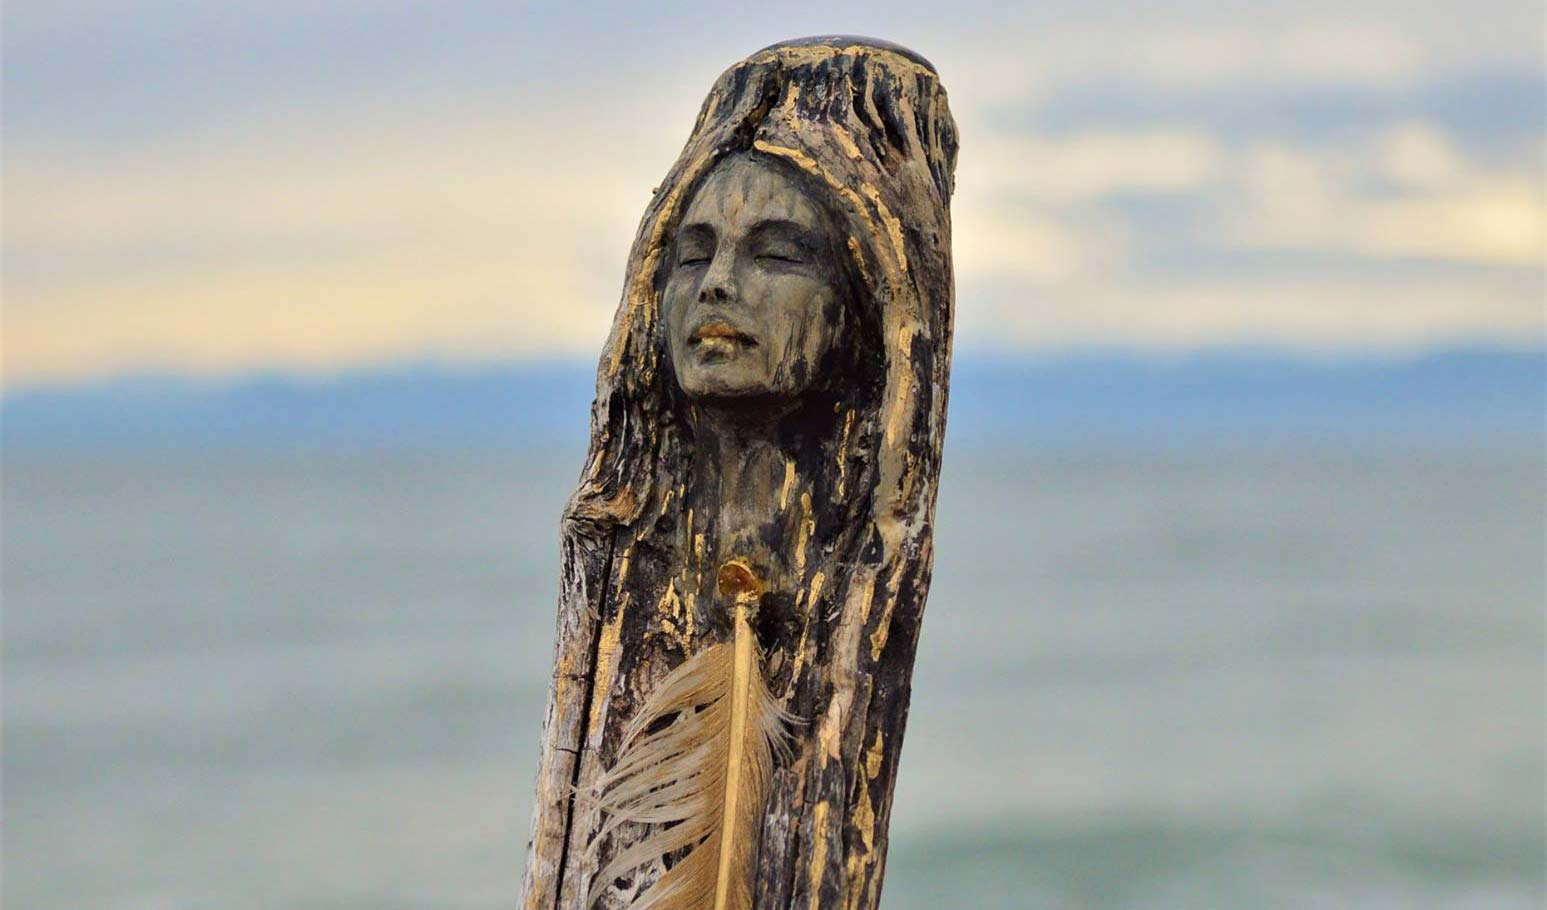 Magnificent Driftwood Sculptures Made from Discarded Wood